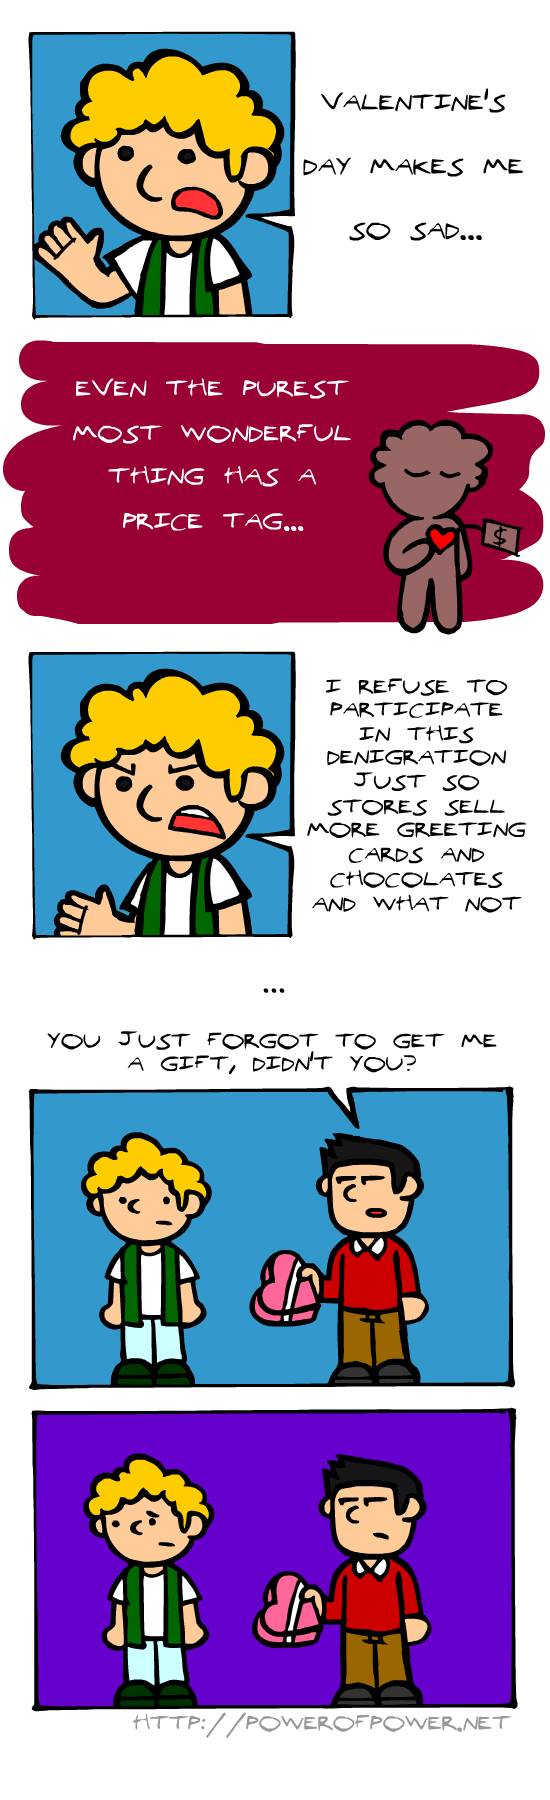 commercialism,web comics,Valentines day